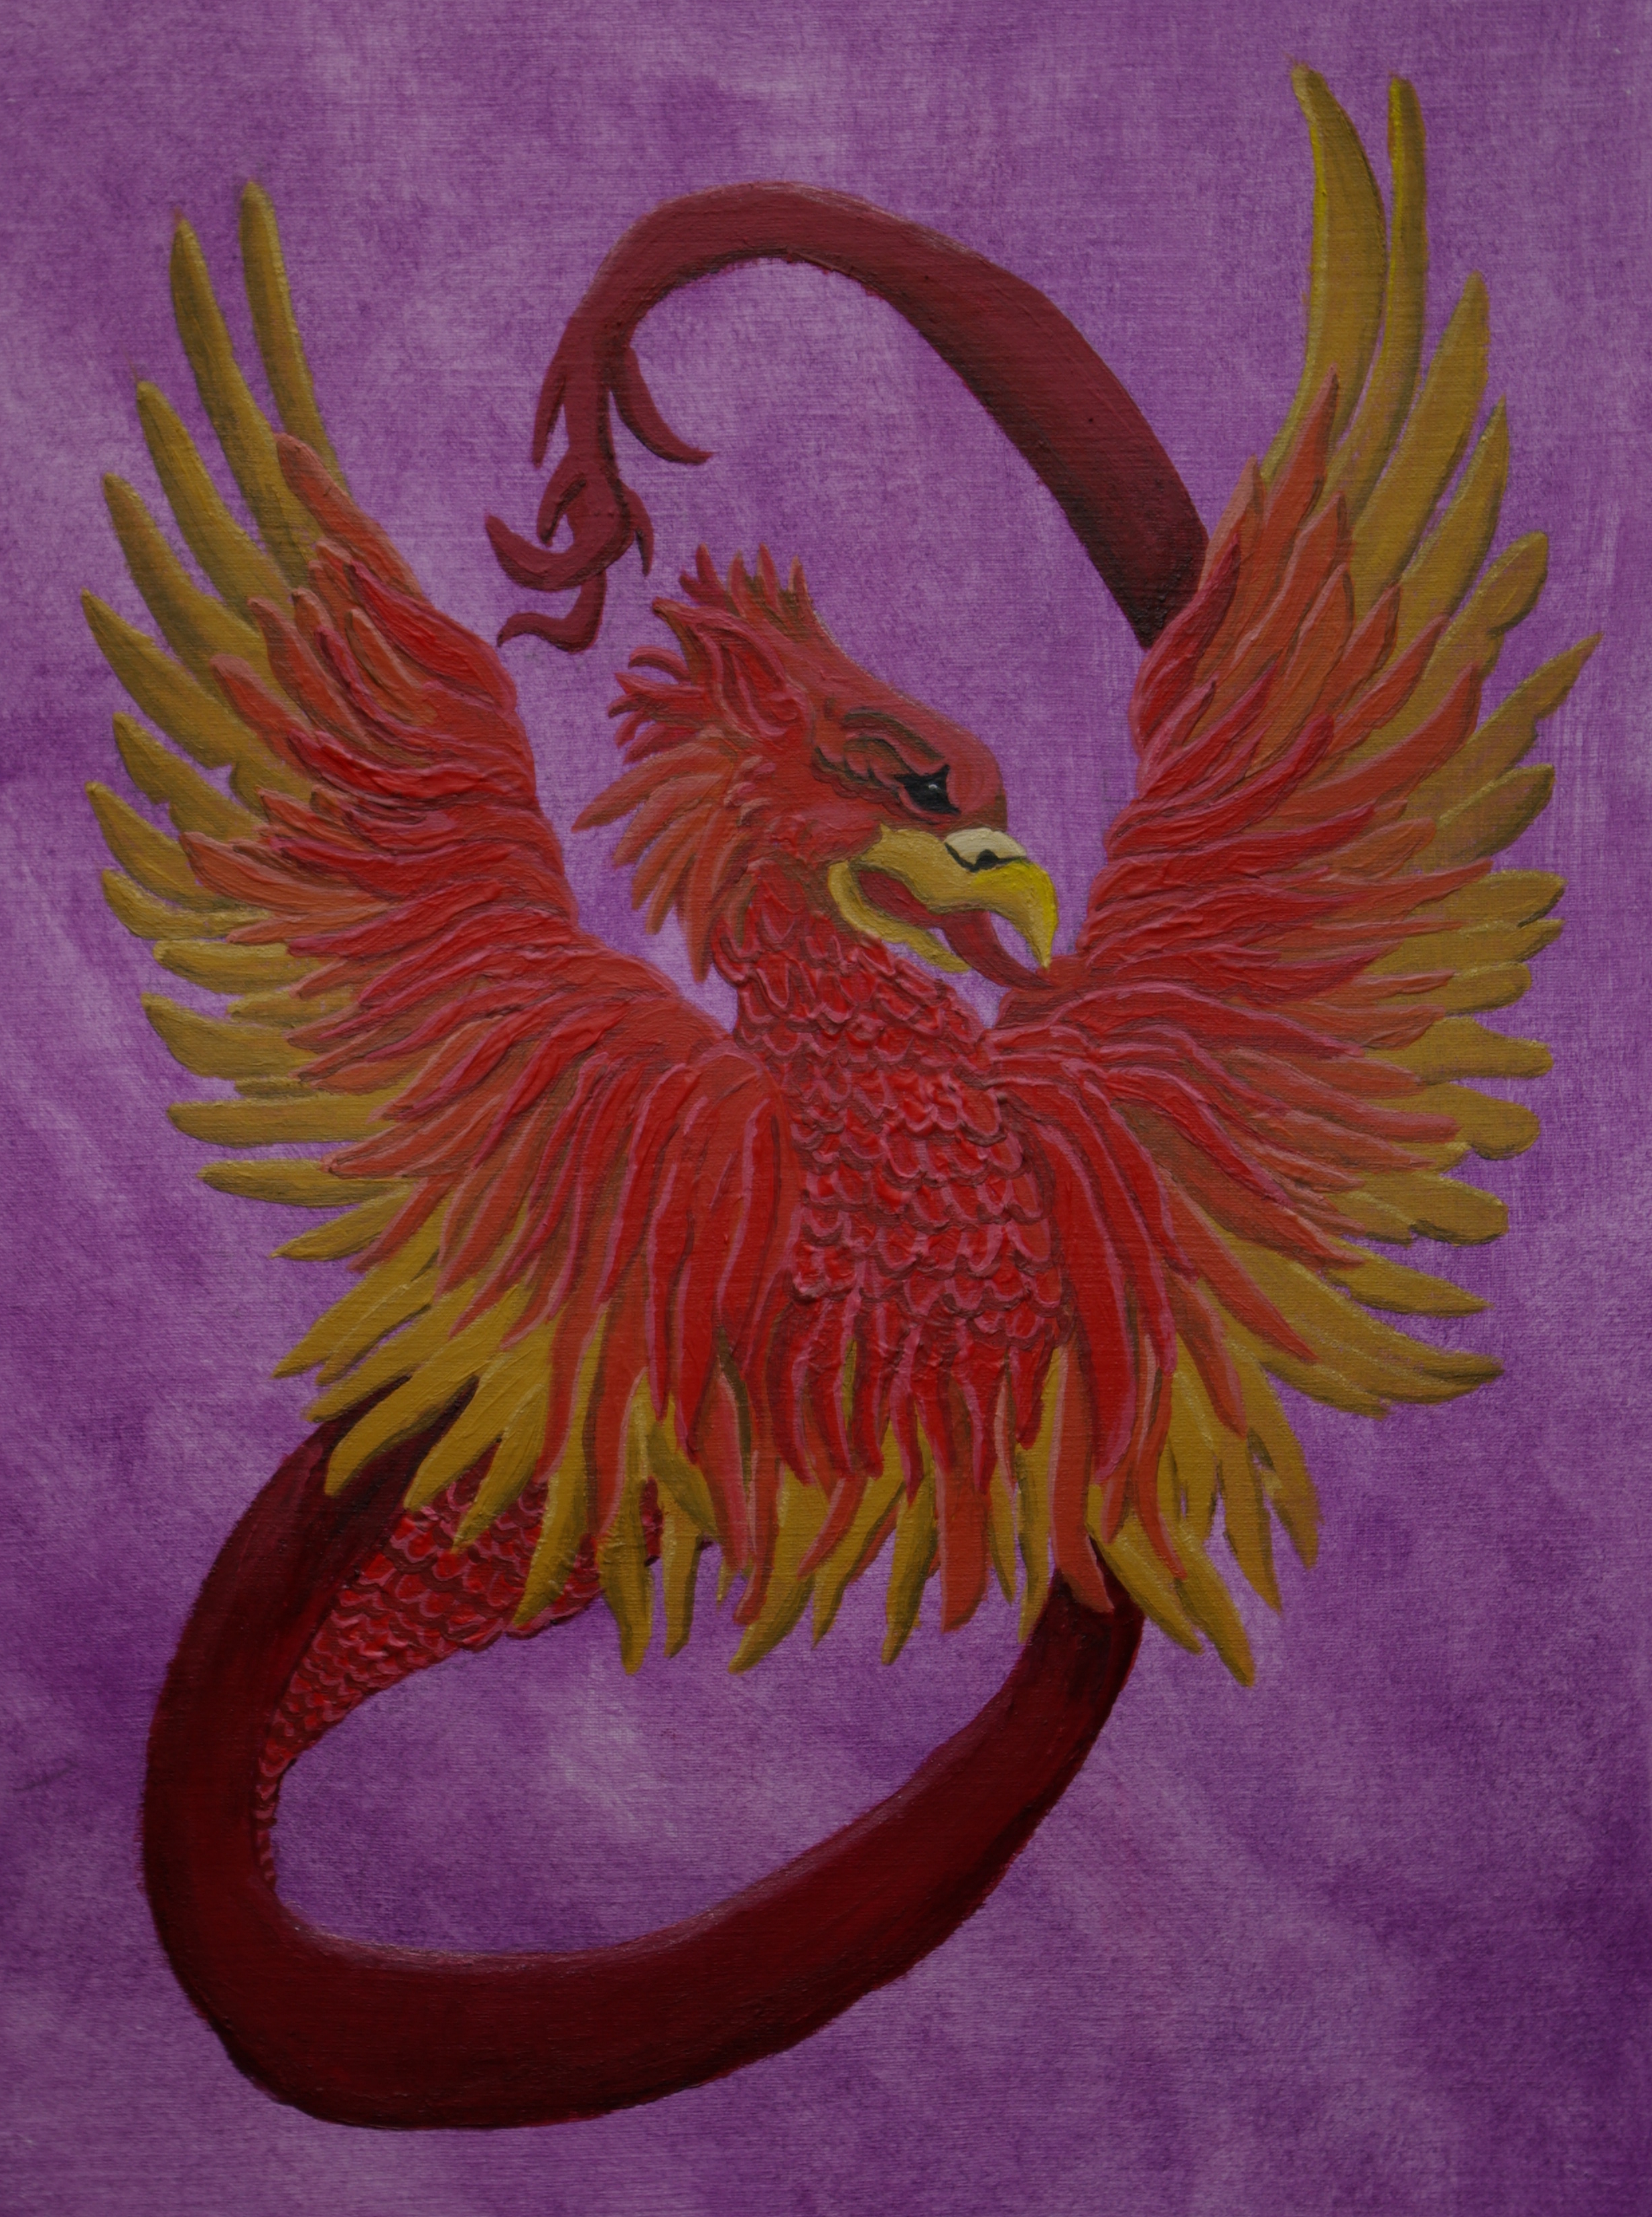 Feathered Dragon